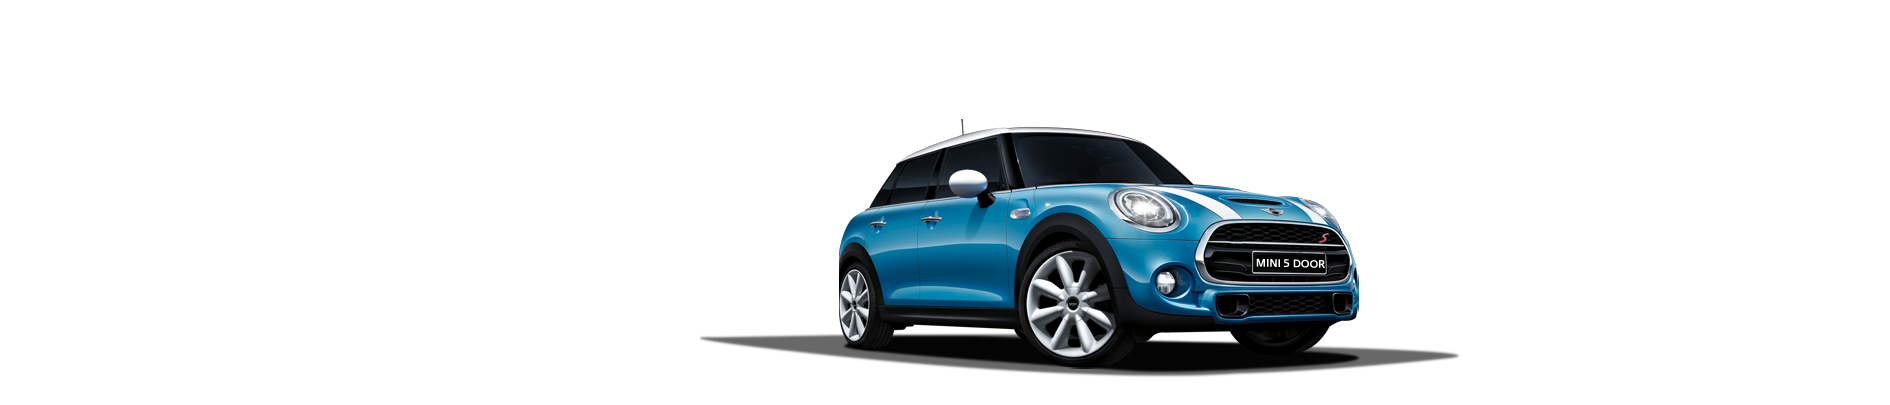 THE NEW MINI. NOW WITH 5 DOORS.